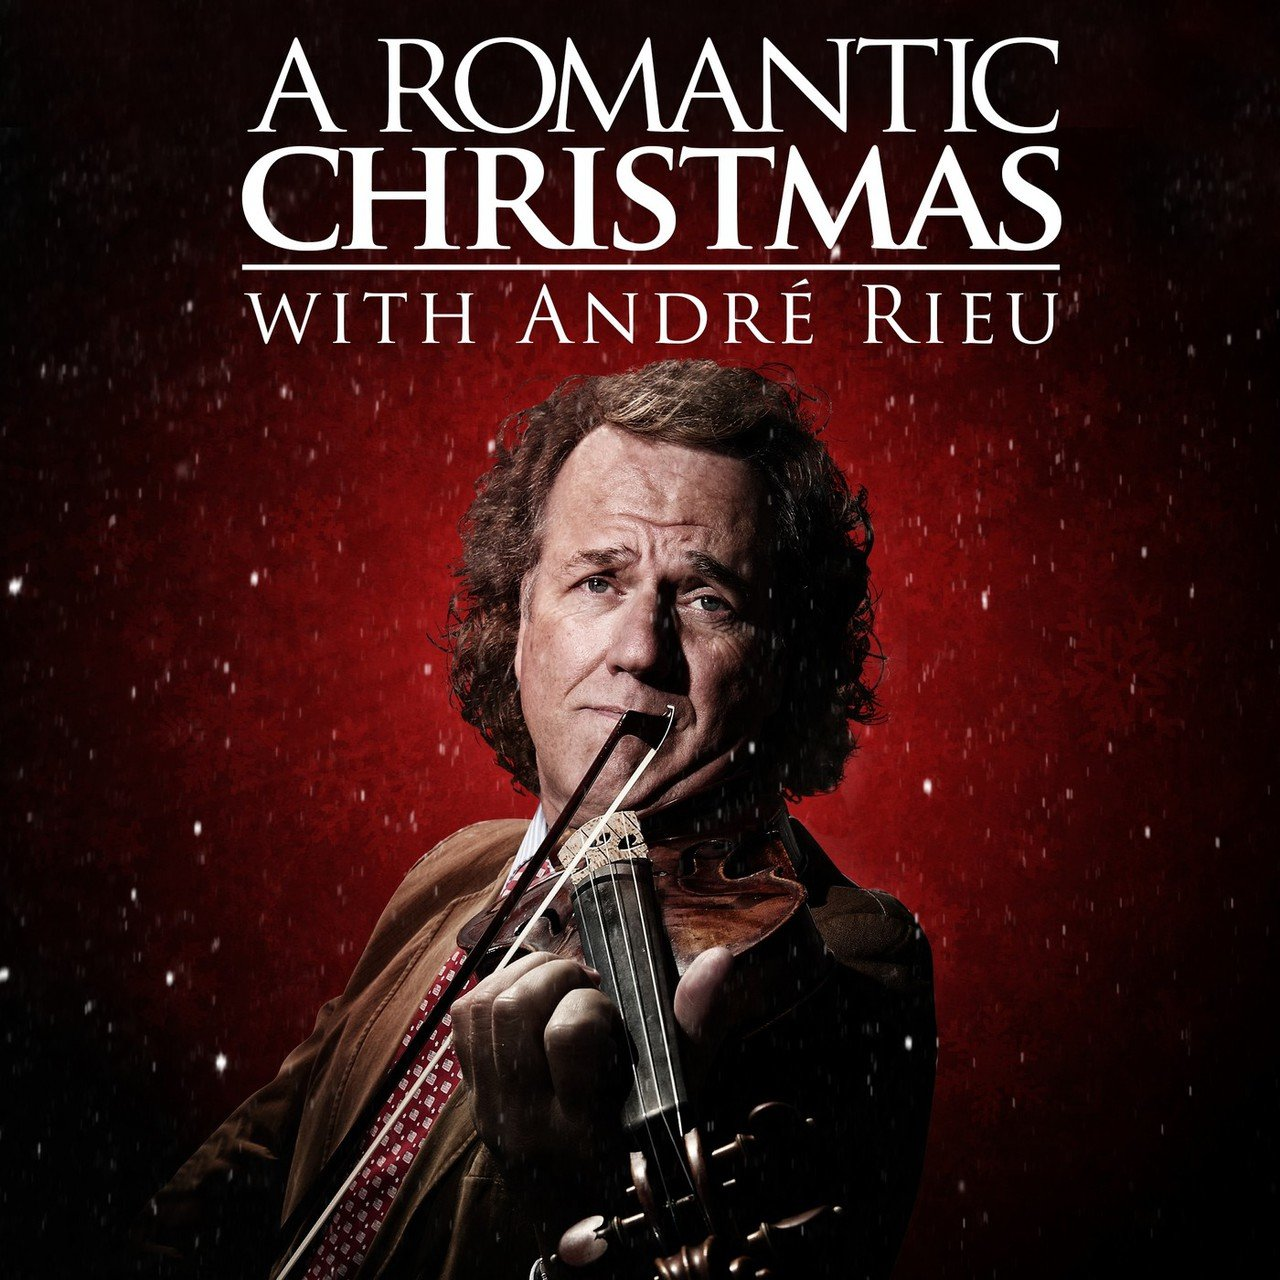 A Romantic Christmas with André Rieu